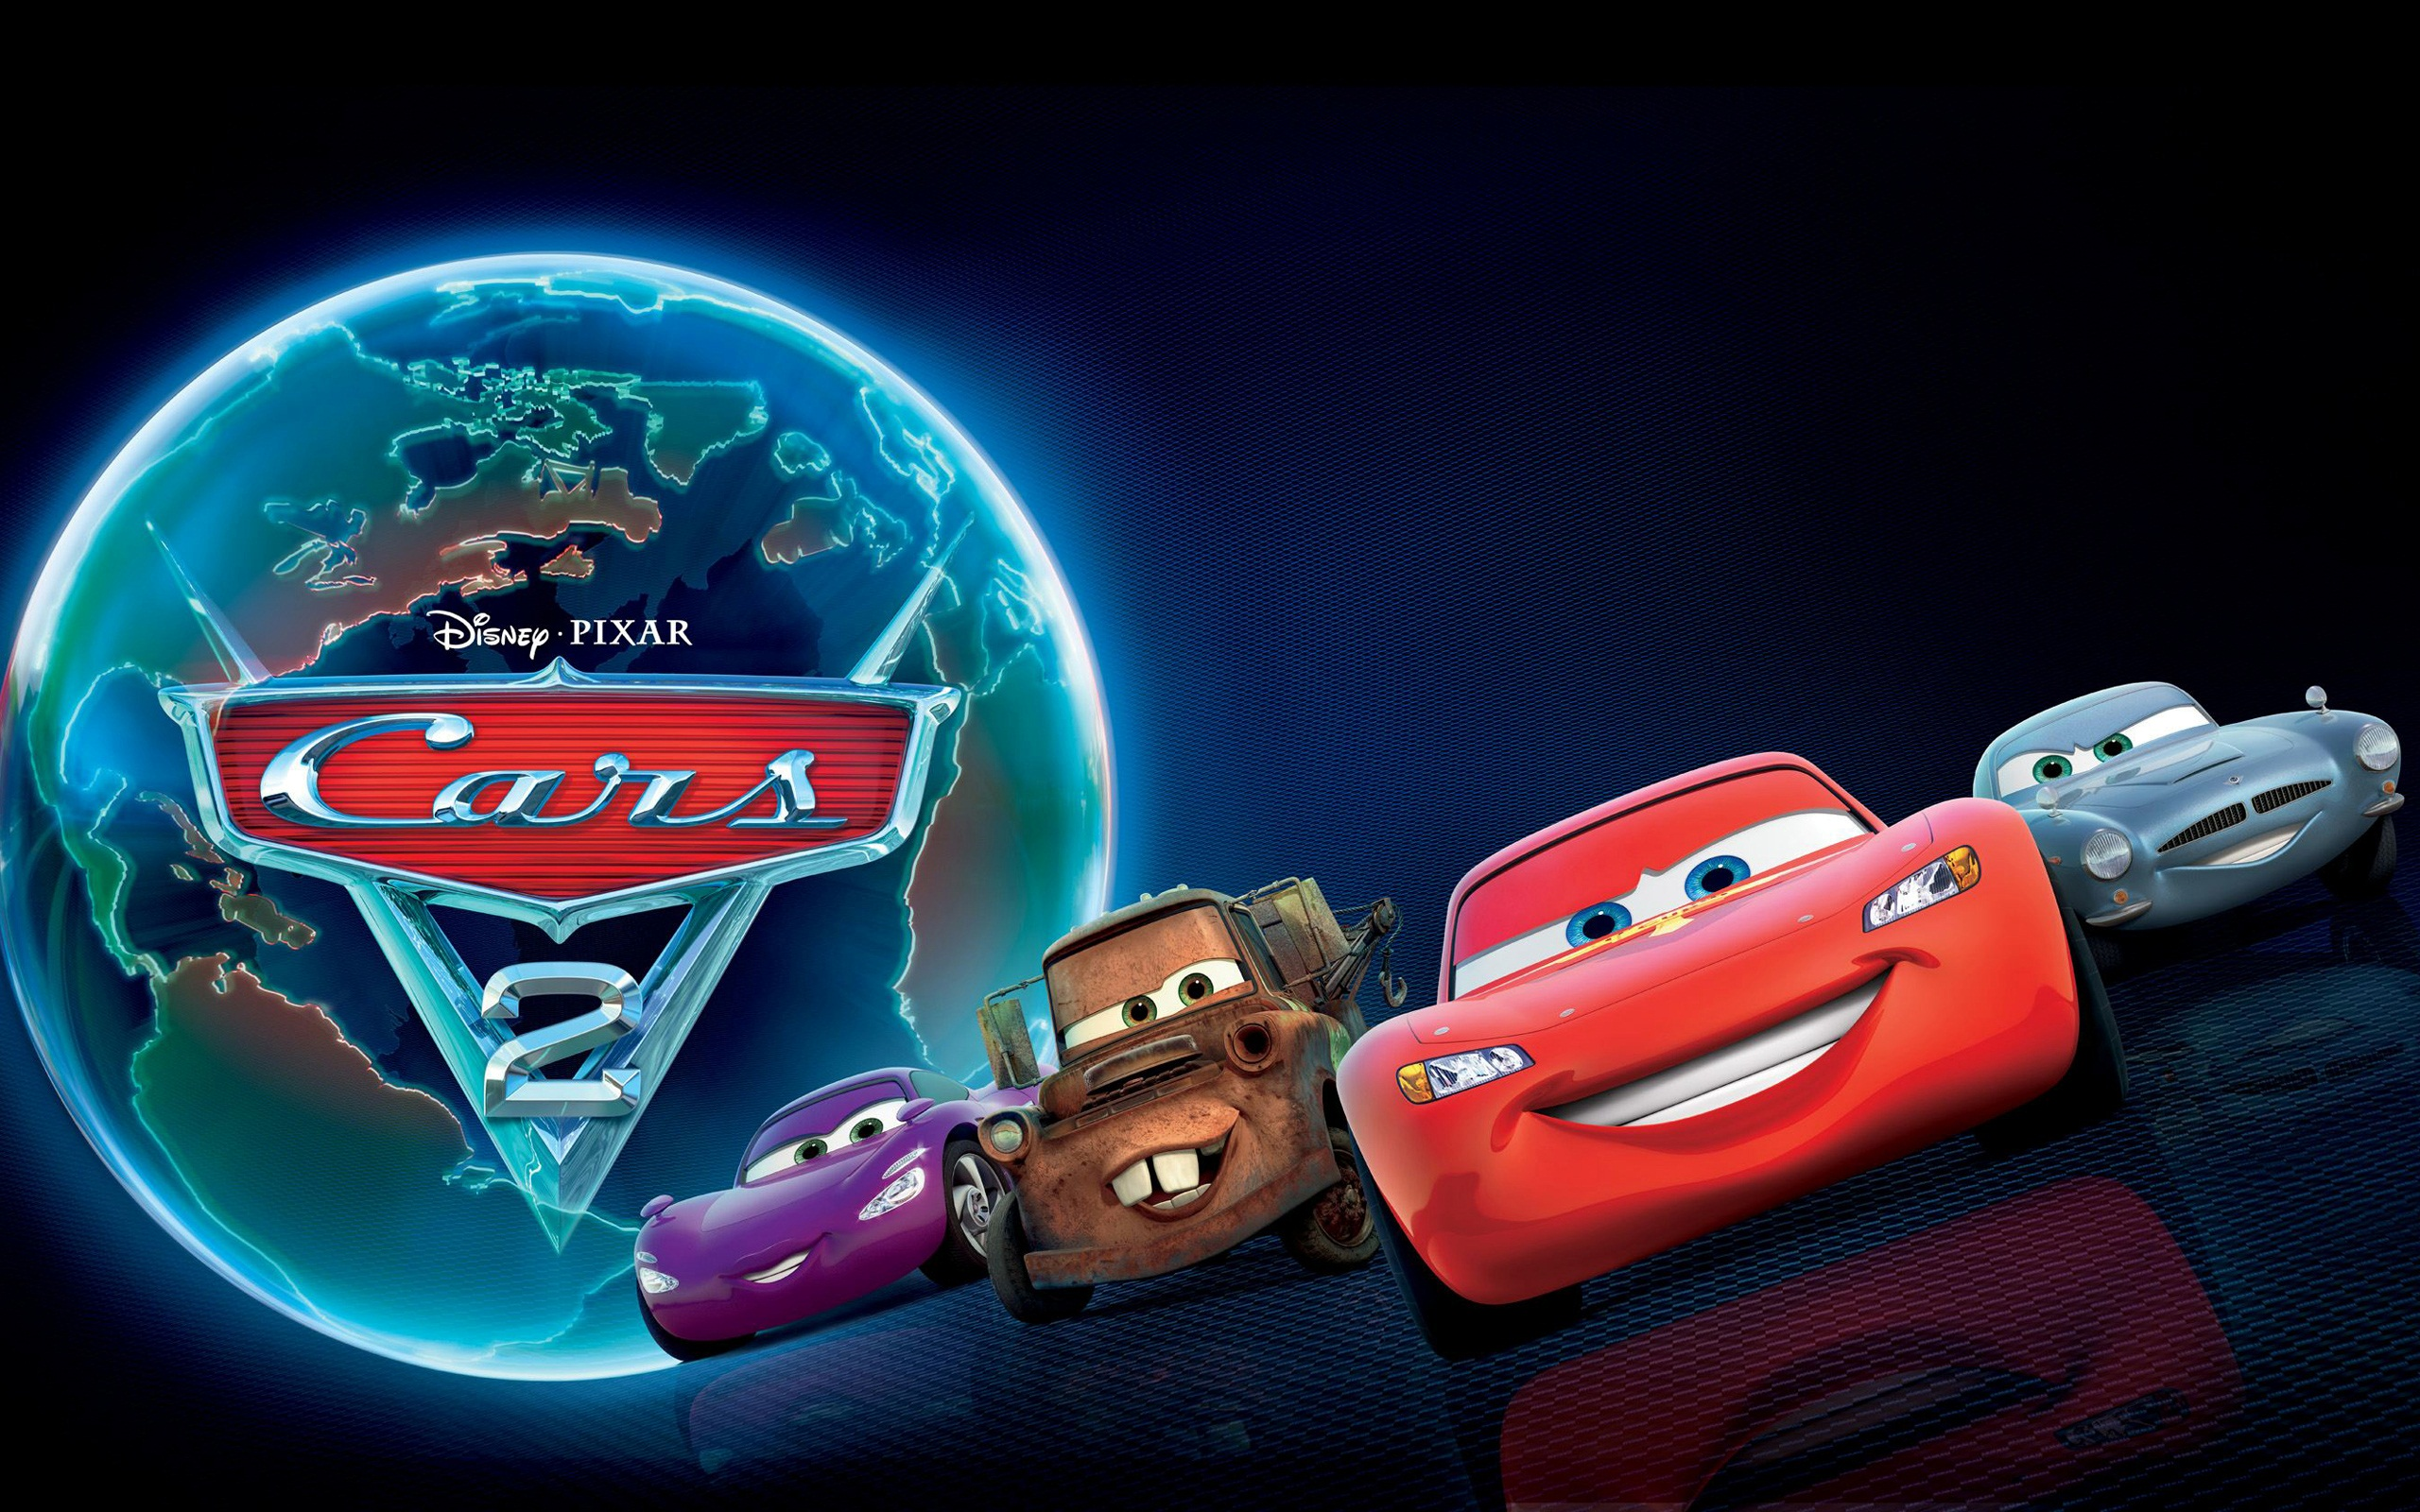 f7d92868b6b305 Disney Pixar Cars 2 images Cars 2 HD wallpaper and background photos ...